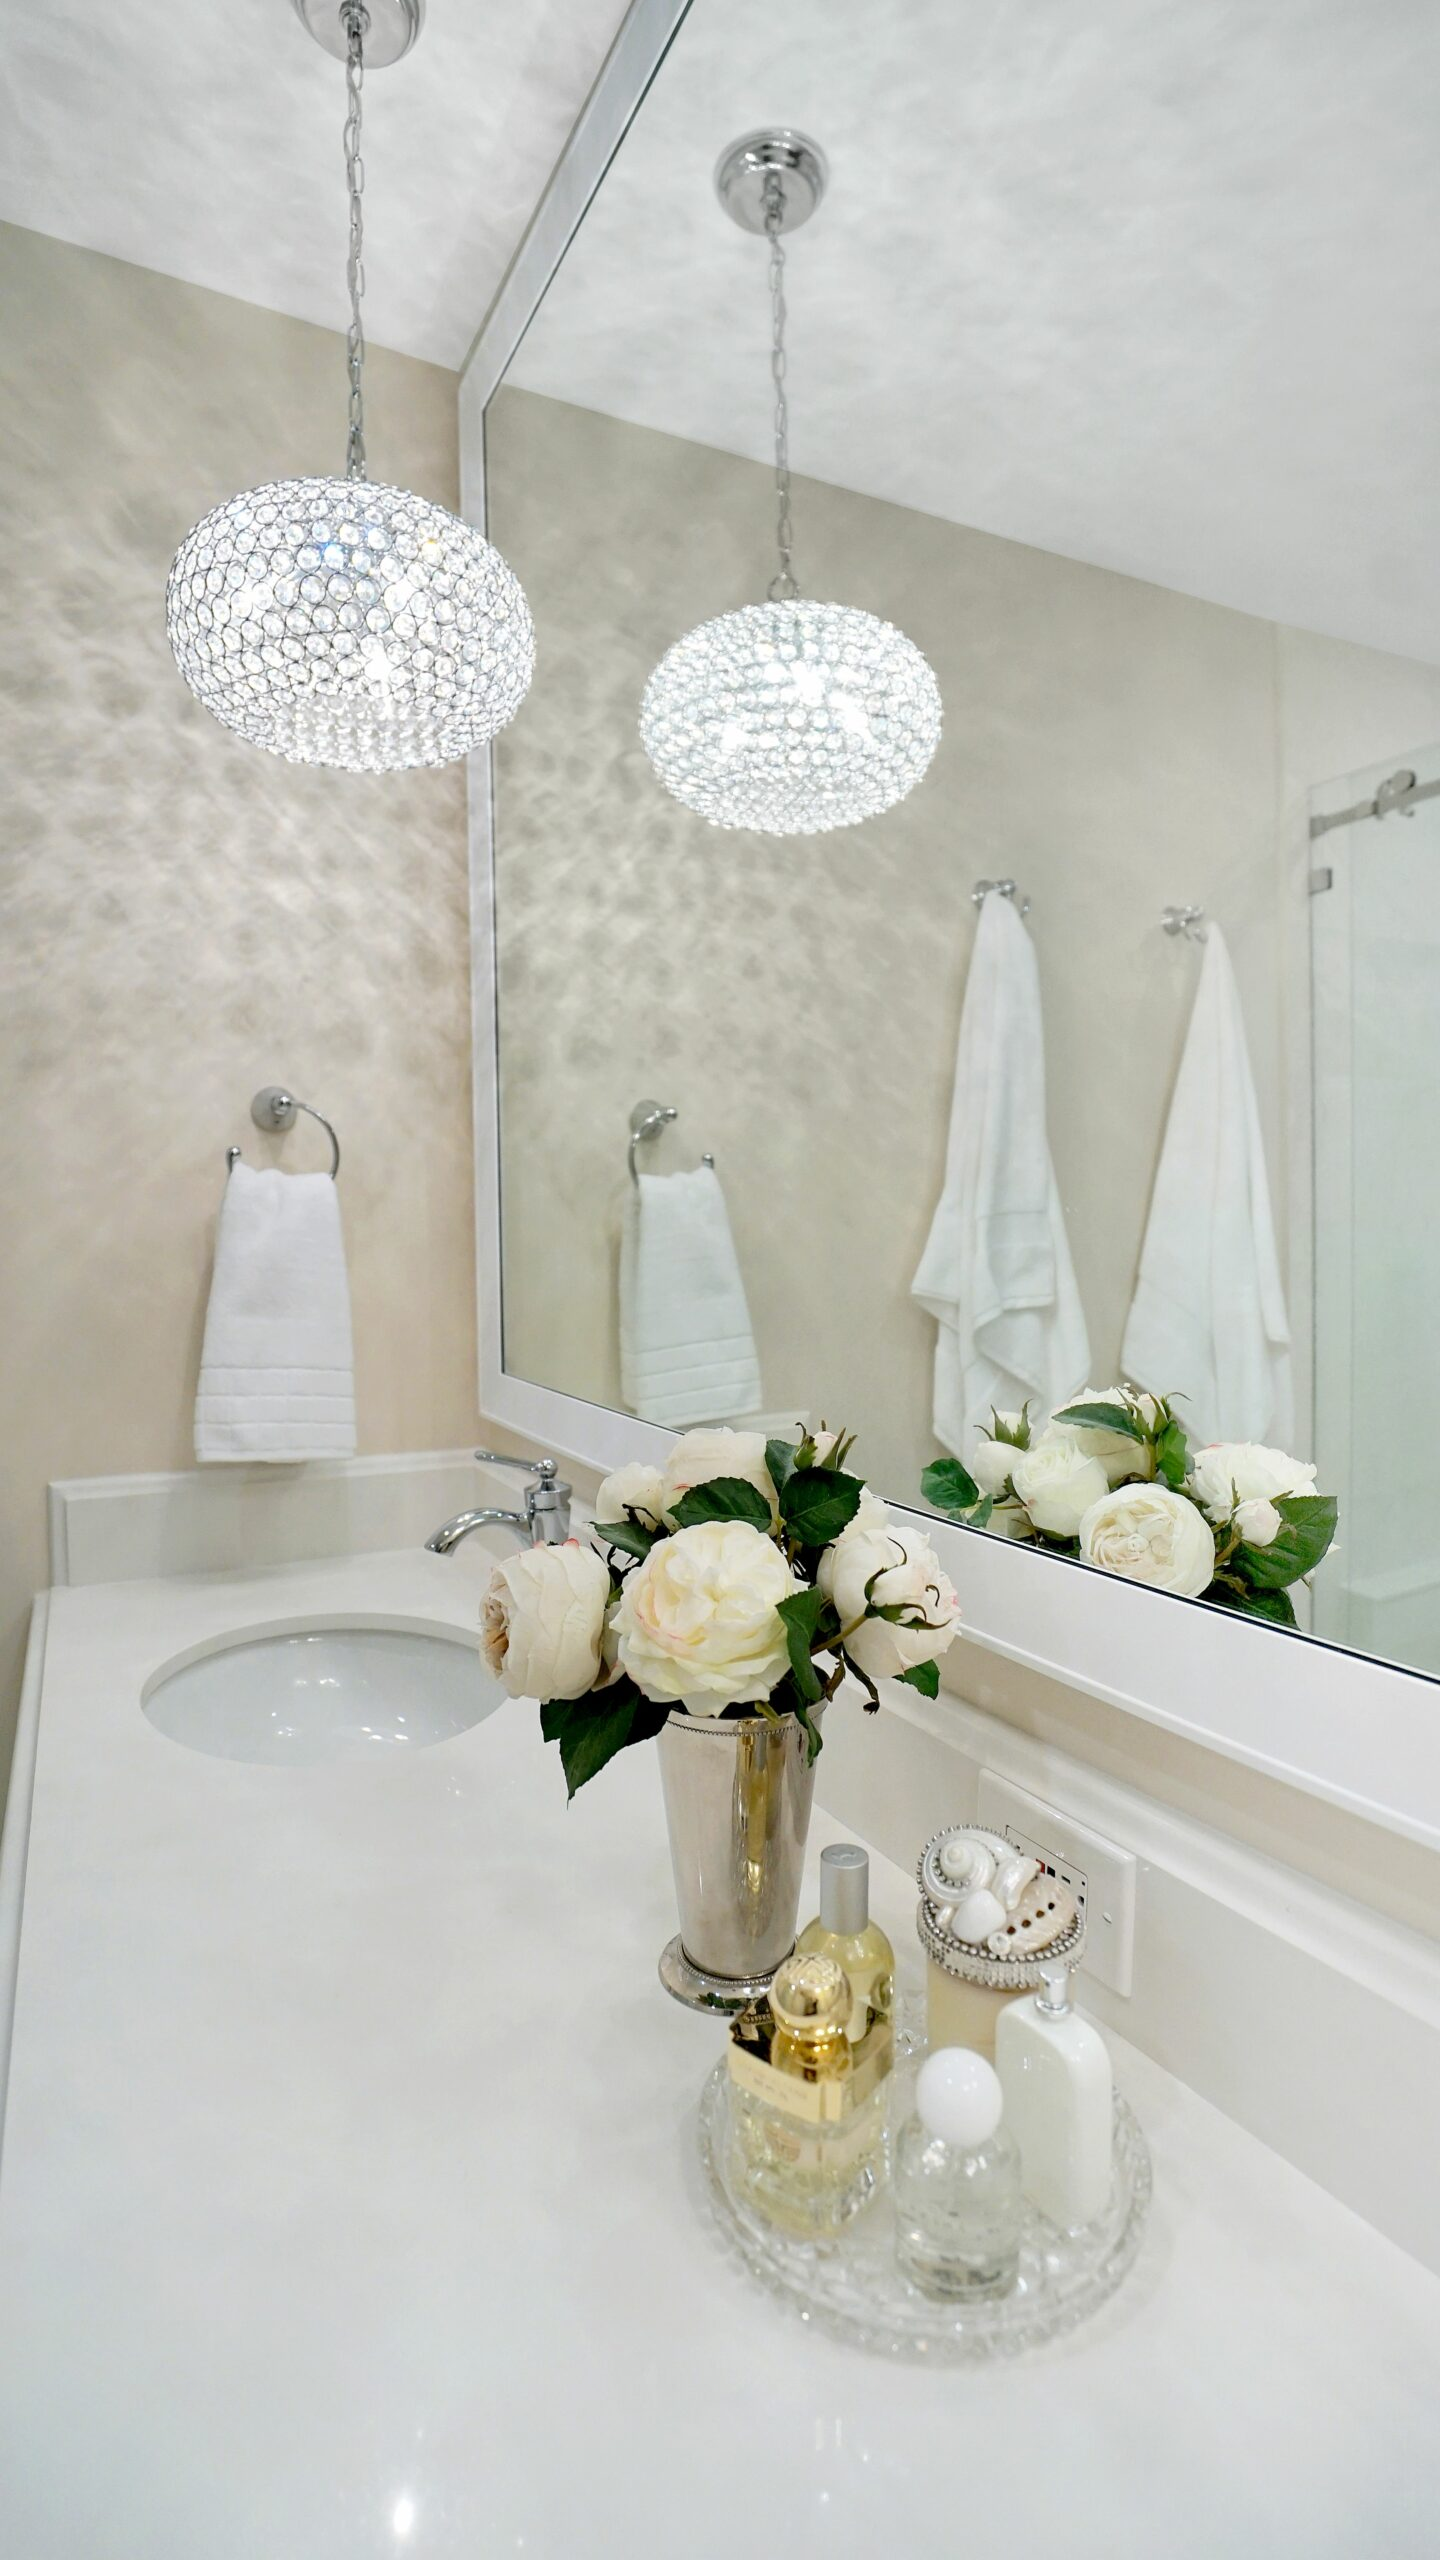 Bathroom Remodeling for Pinecrest, Palmetto Bay, Coral Gables, Coconut Grove, Miami Springs, and Key Largo